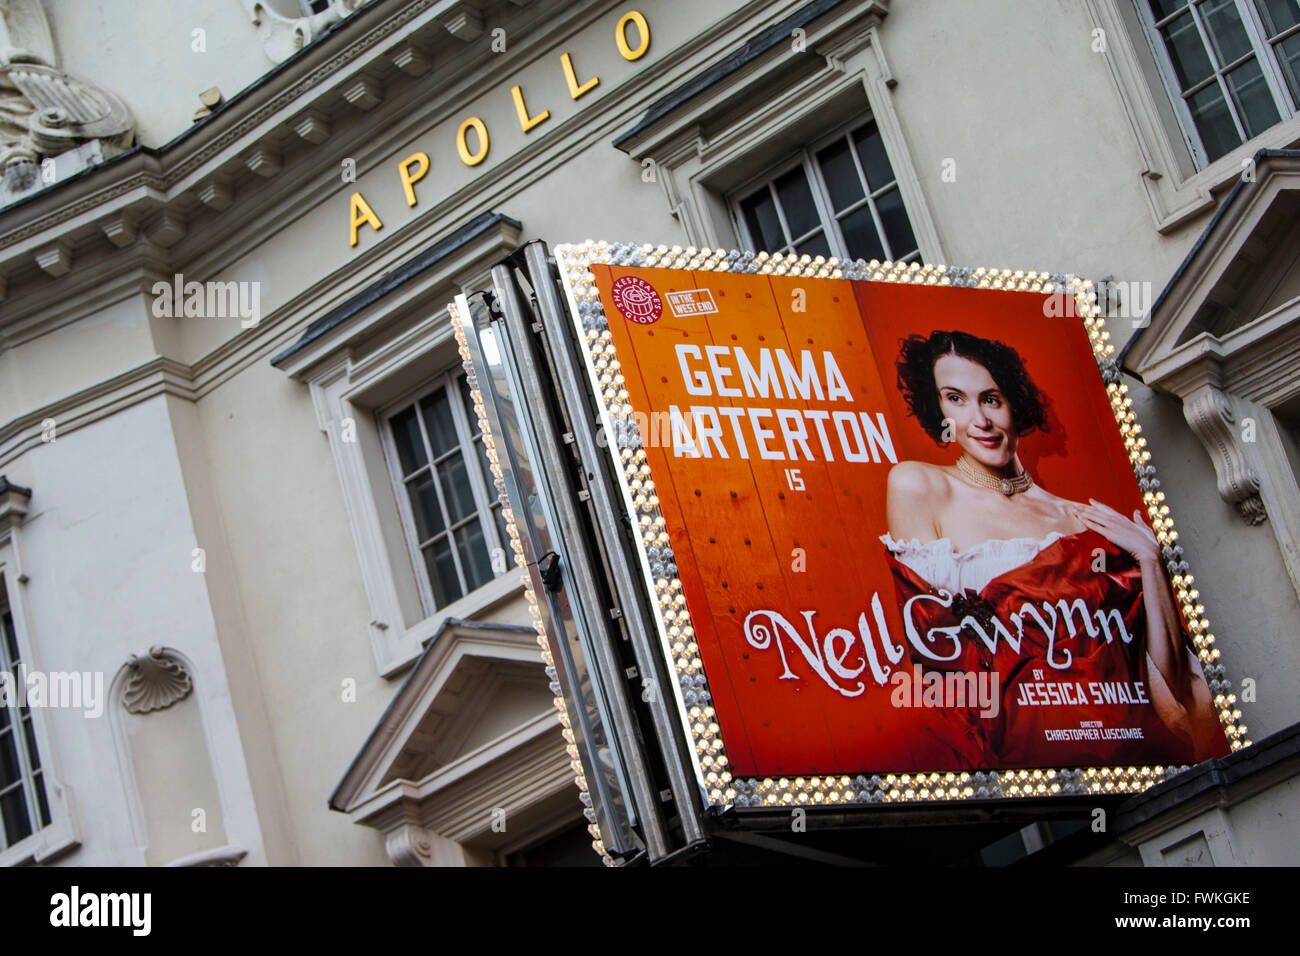 Theatre Signage at the Apollo Theatre on Shaftesbury Avenue in London's West end. - Stock Image